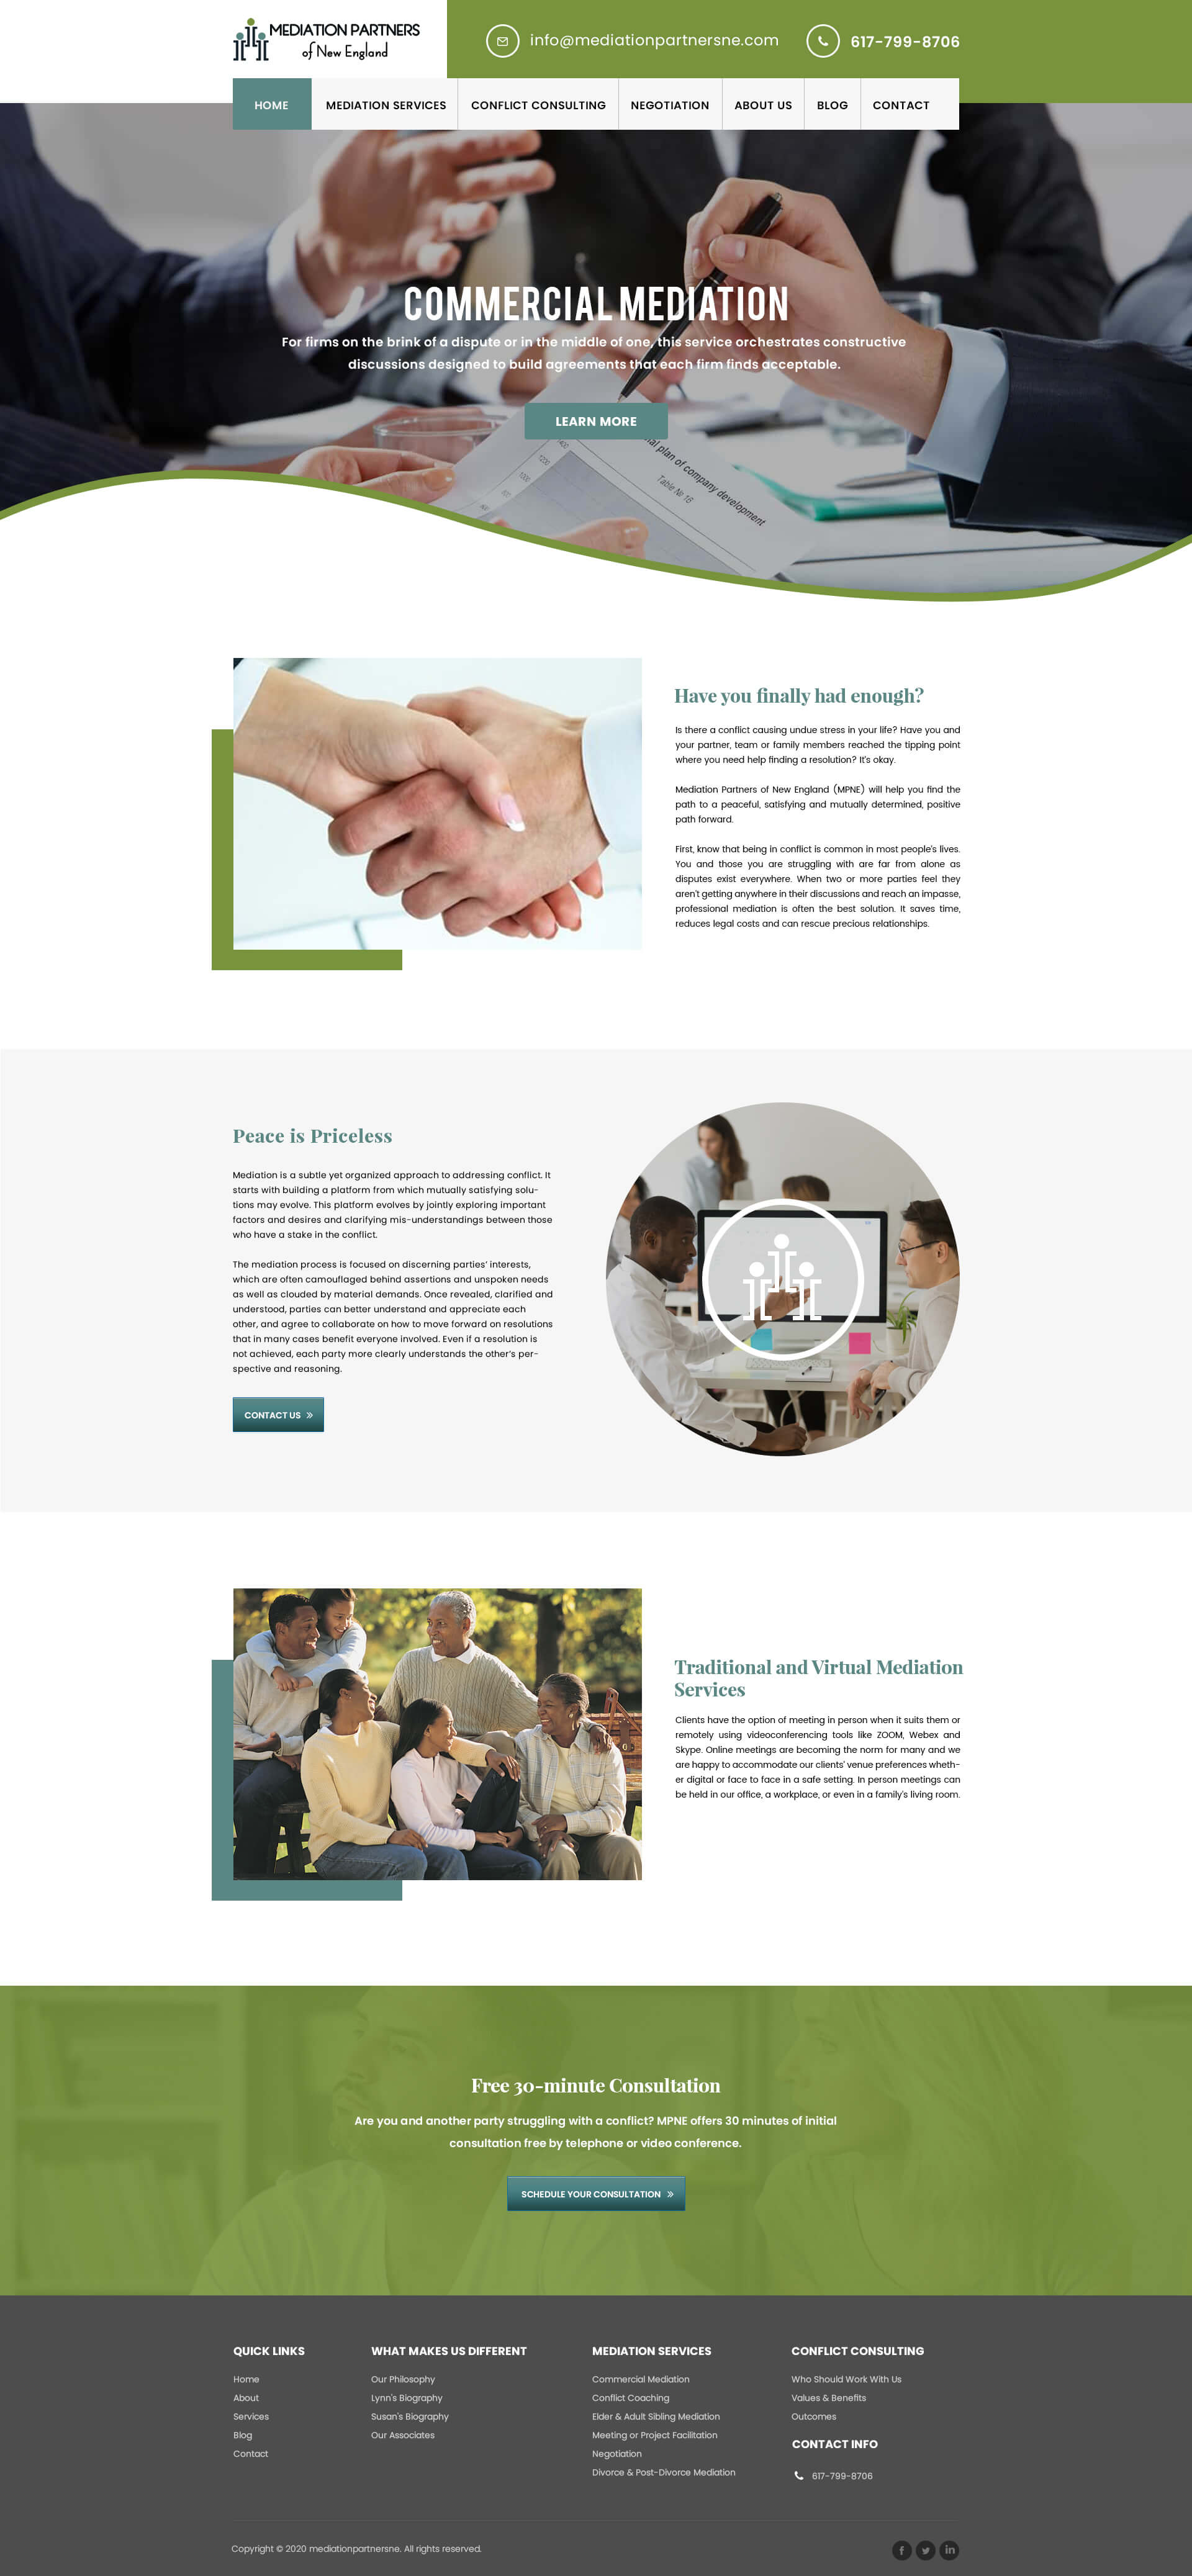 Serious Professional Web Design For A Company By Tamil Tech Design 24519362